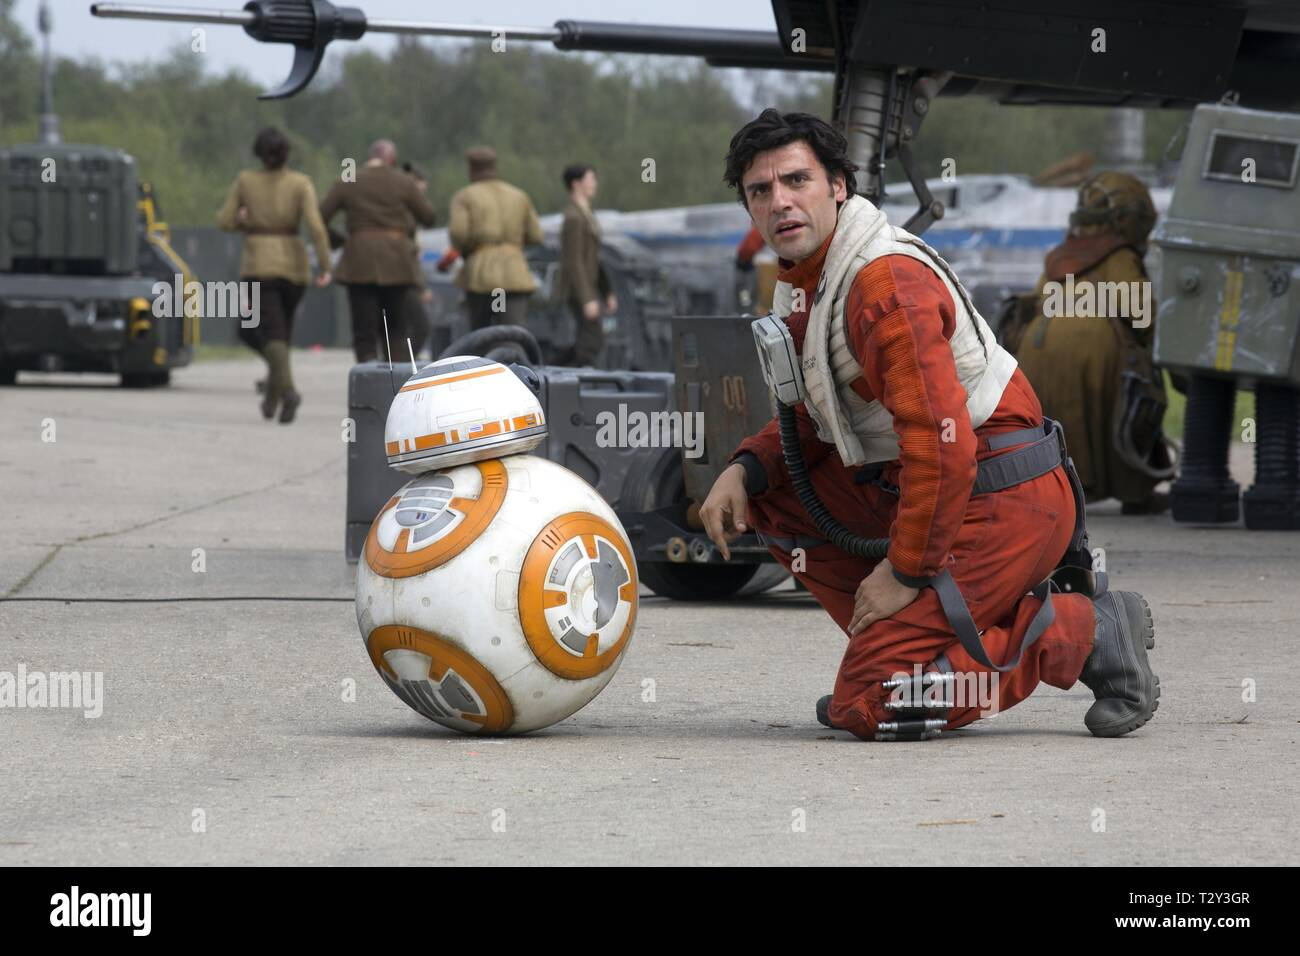 BB-8 DROID, OSCAR ISAAC, STAR WARS: EPISODE VII - THE FORCE AWAKENS, 2015 - Stock Image